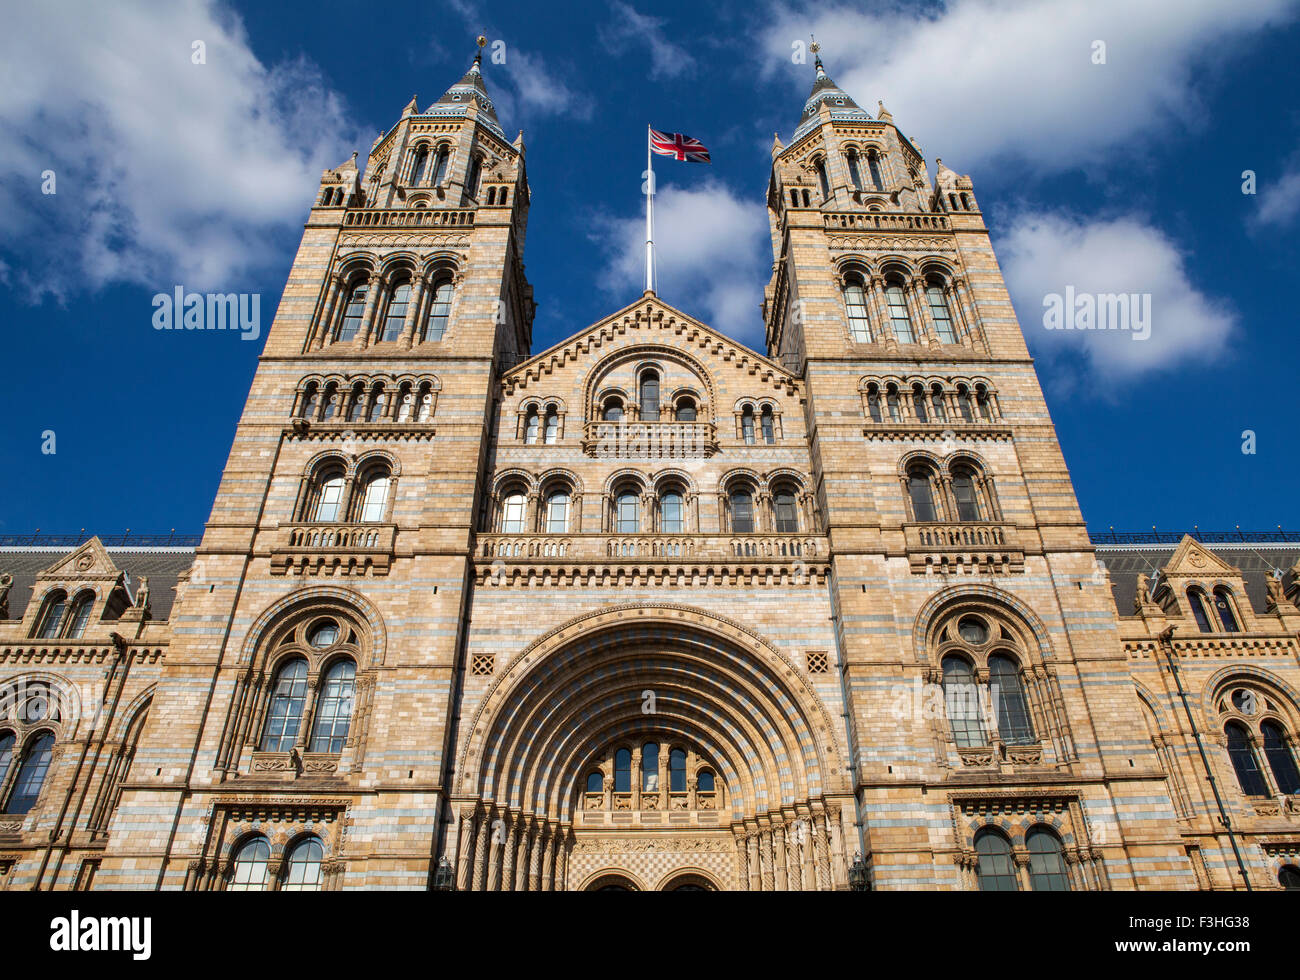 The exterior of the Natural History Museum in London. - Stock Image